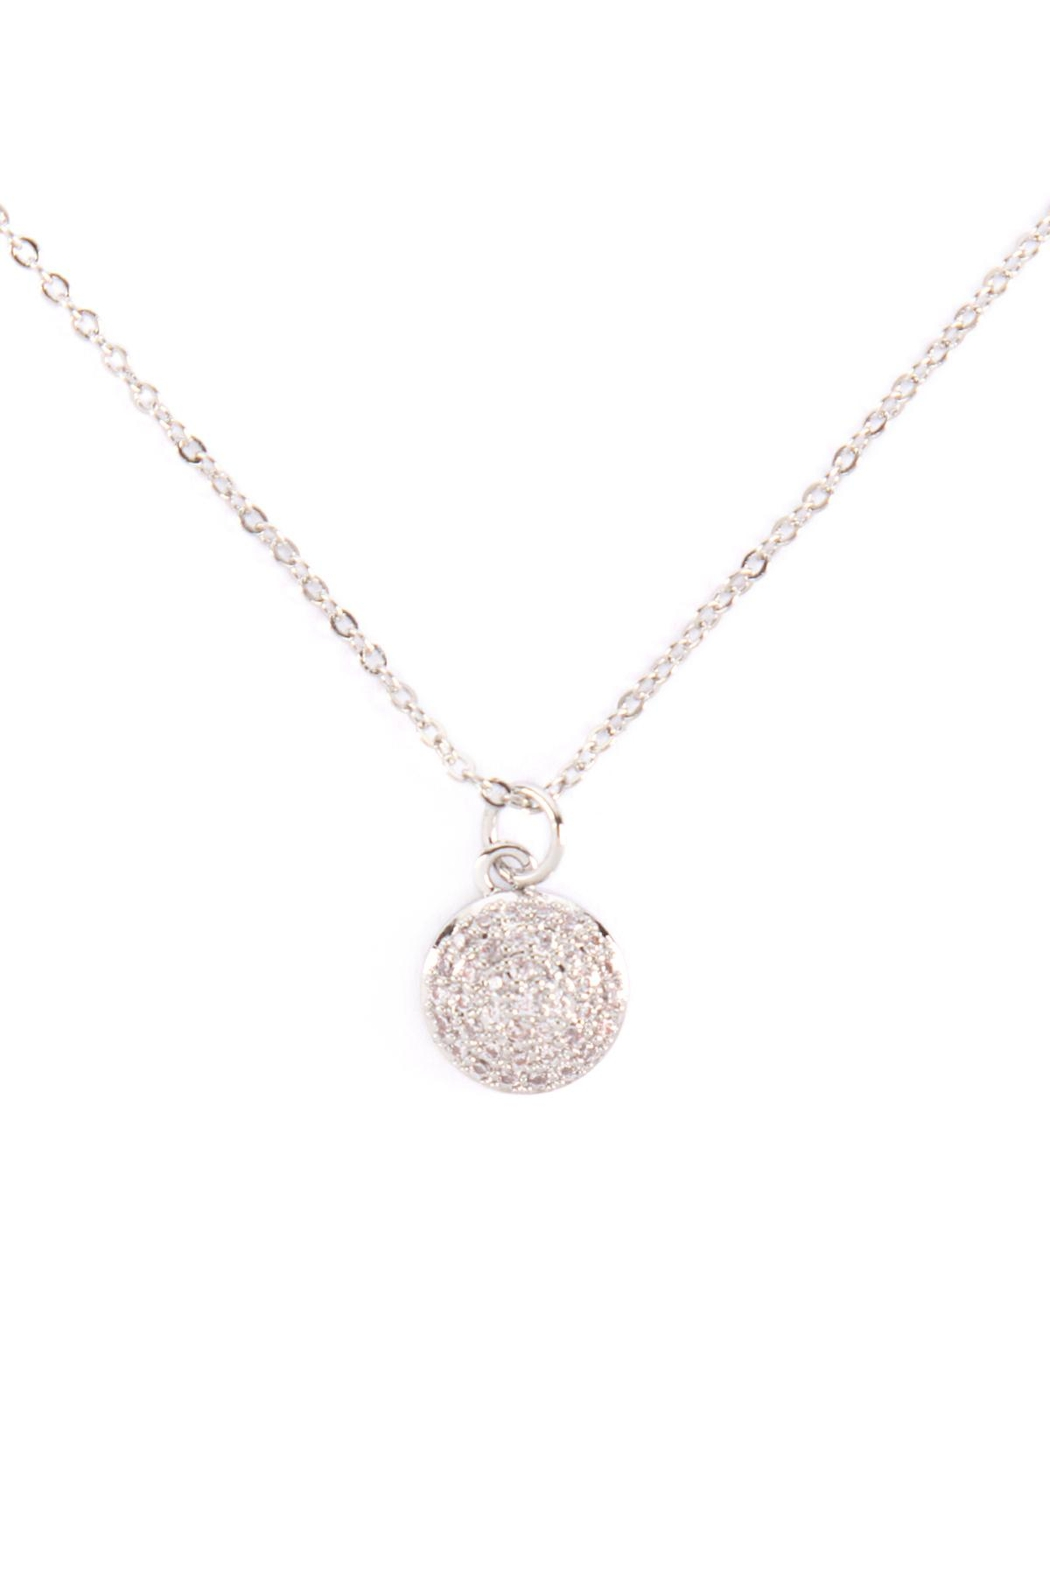 Riah Fashion Cubic-Zirconia-Pave-Round-Disk-Necklace - Main Image